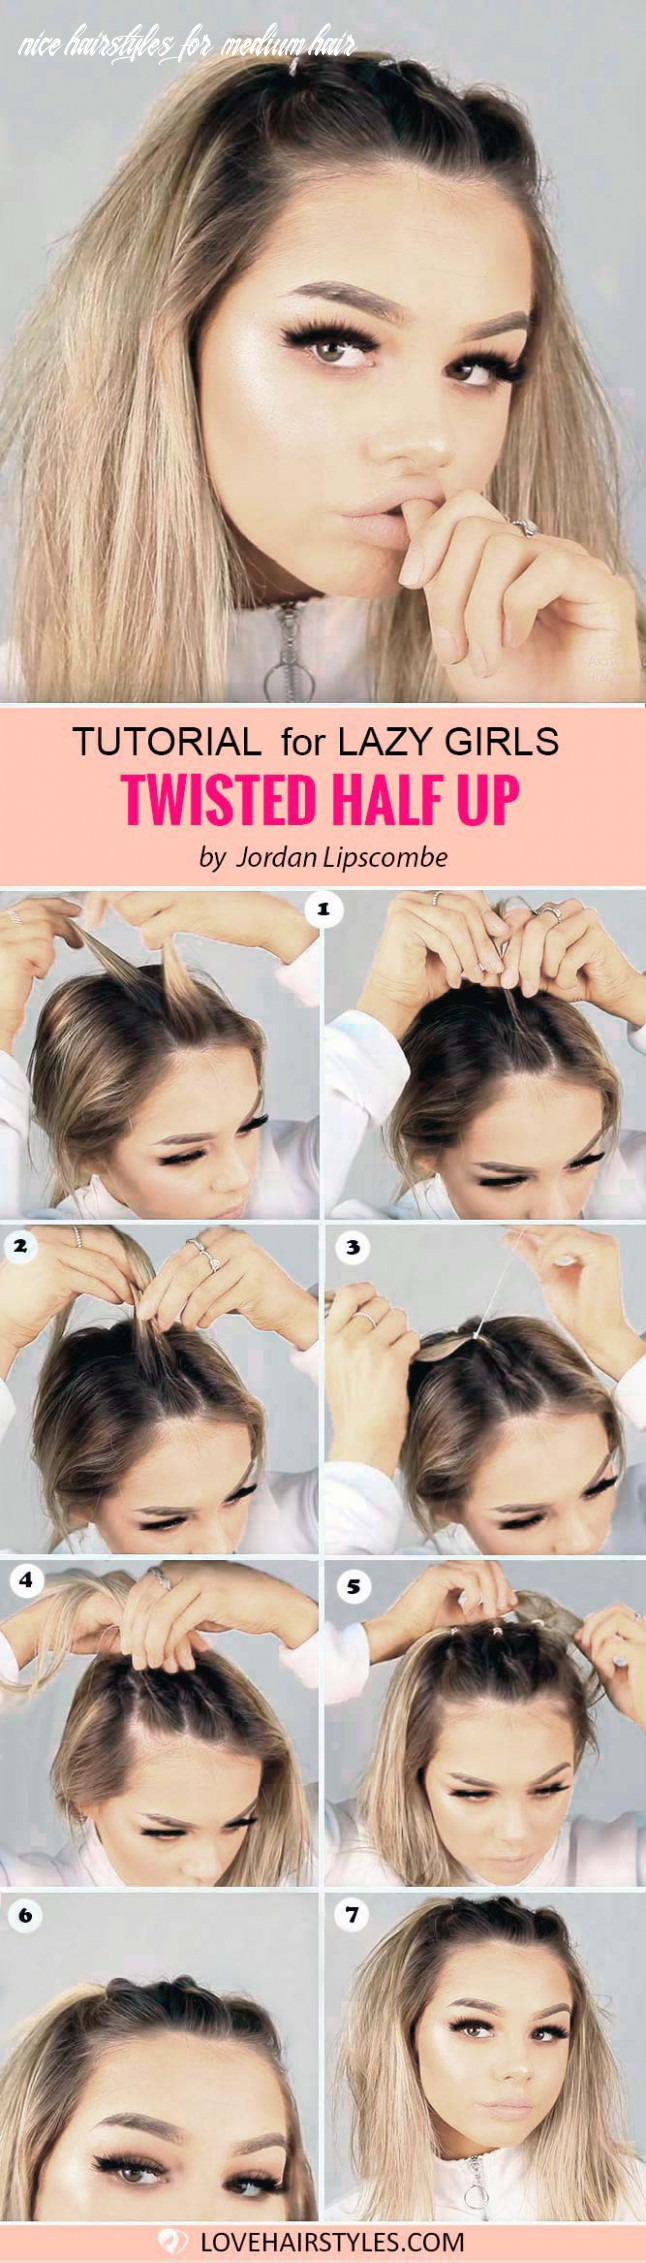 10 perfectly easy hairstyles for medium hair | lovehairstyles nice hairstyles for medium hair